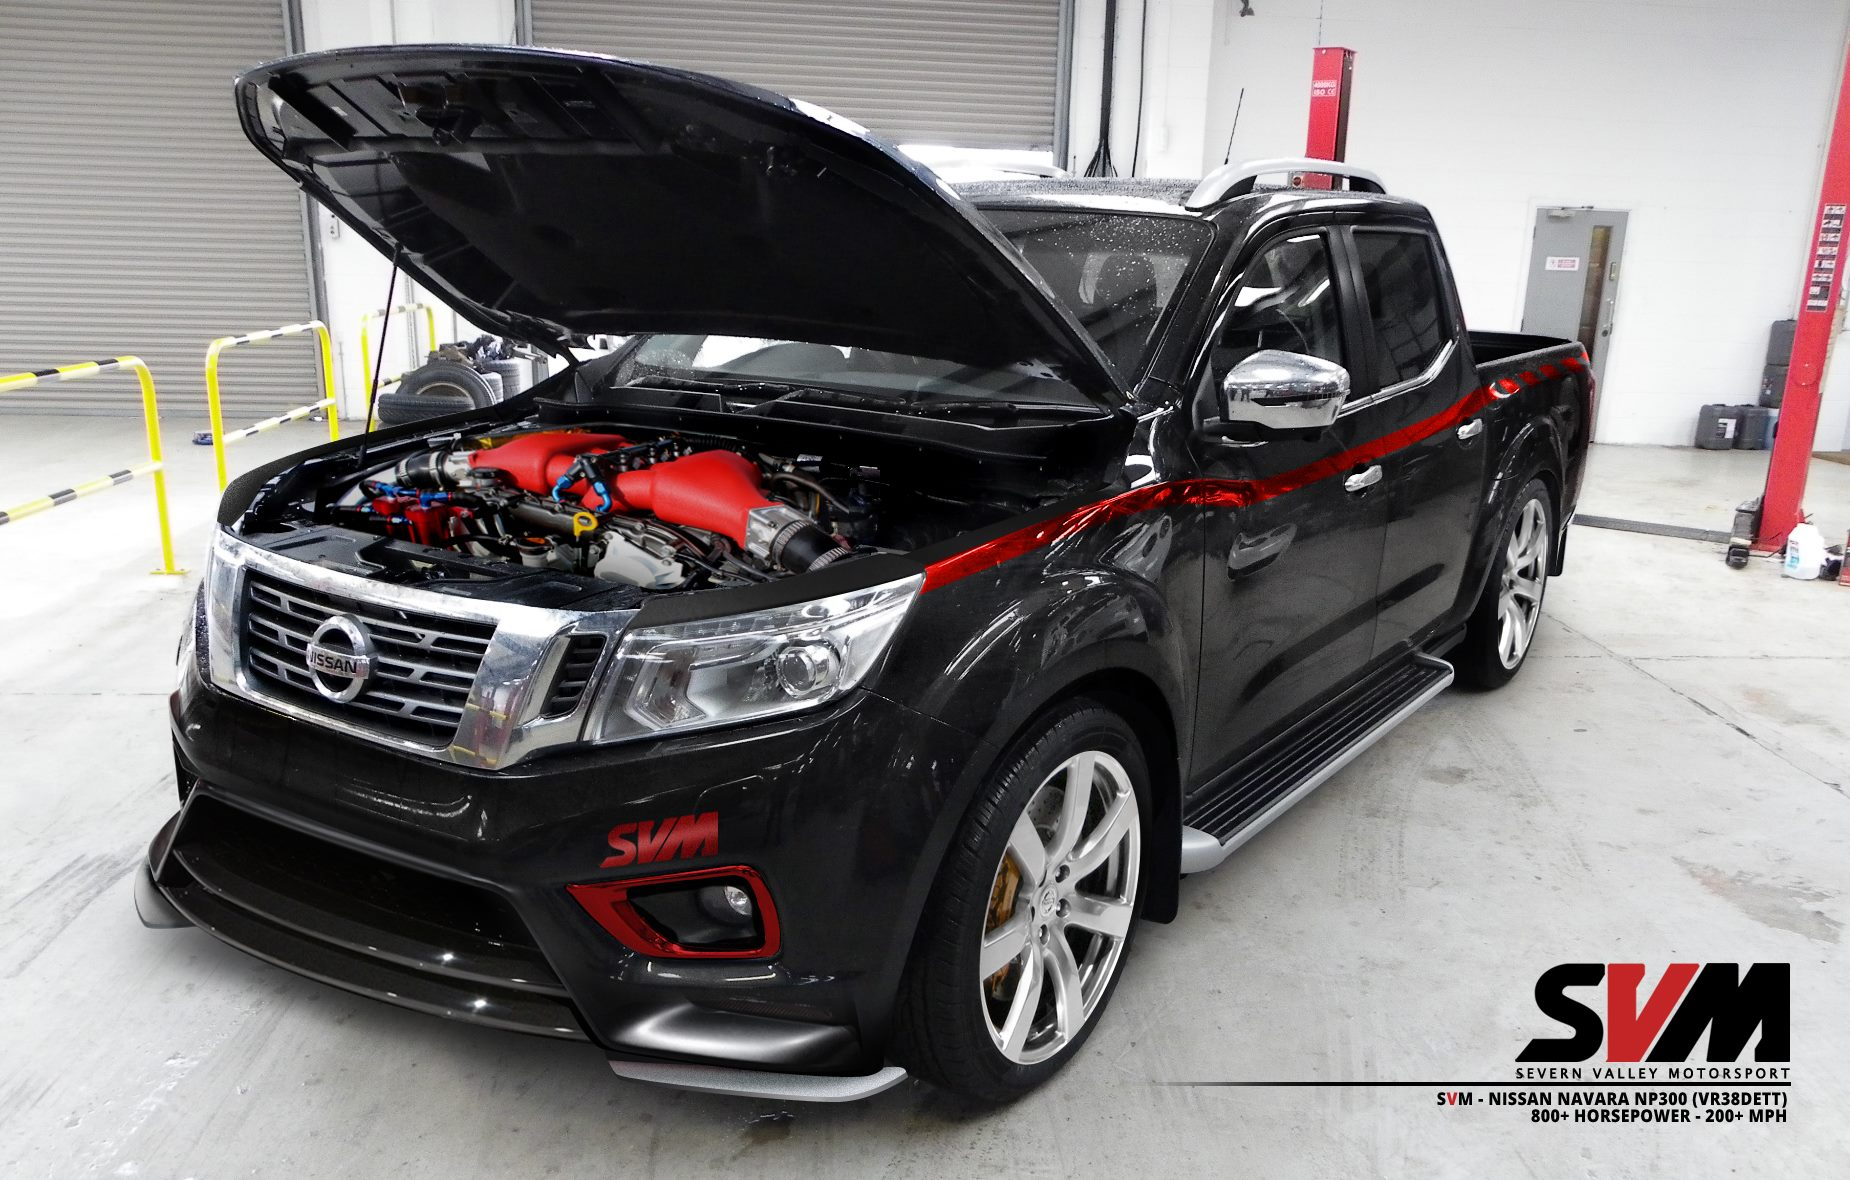 Svm Nissan Navara Np300 Is Powered By An 800 Hp Vr38dett